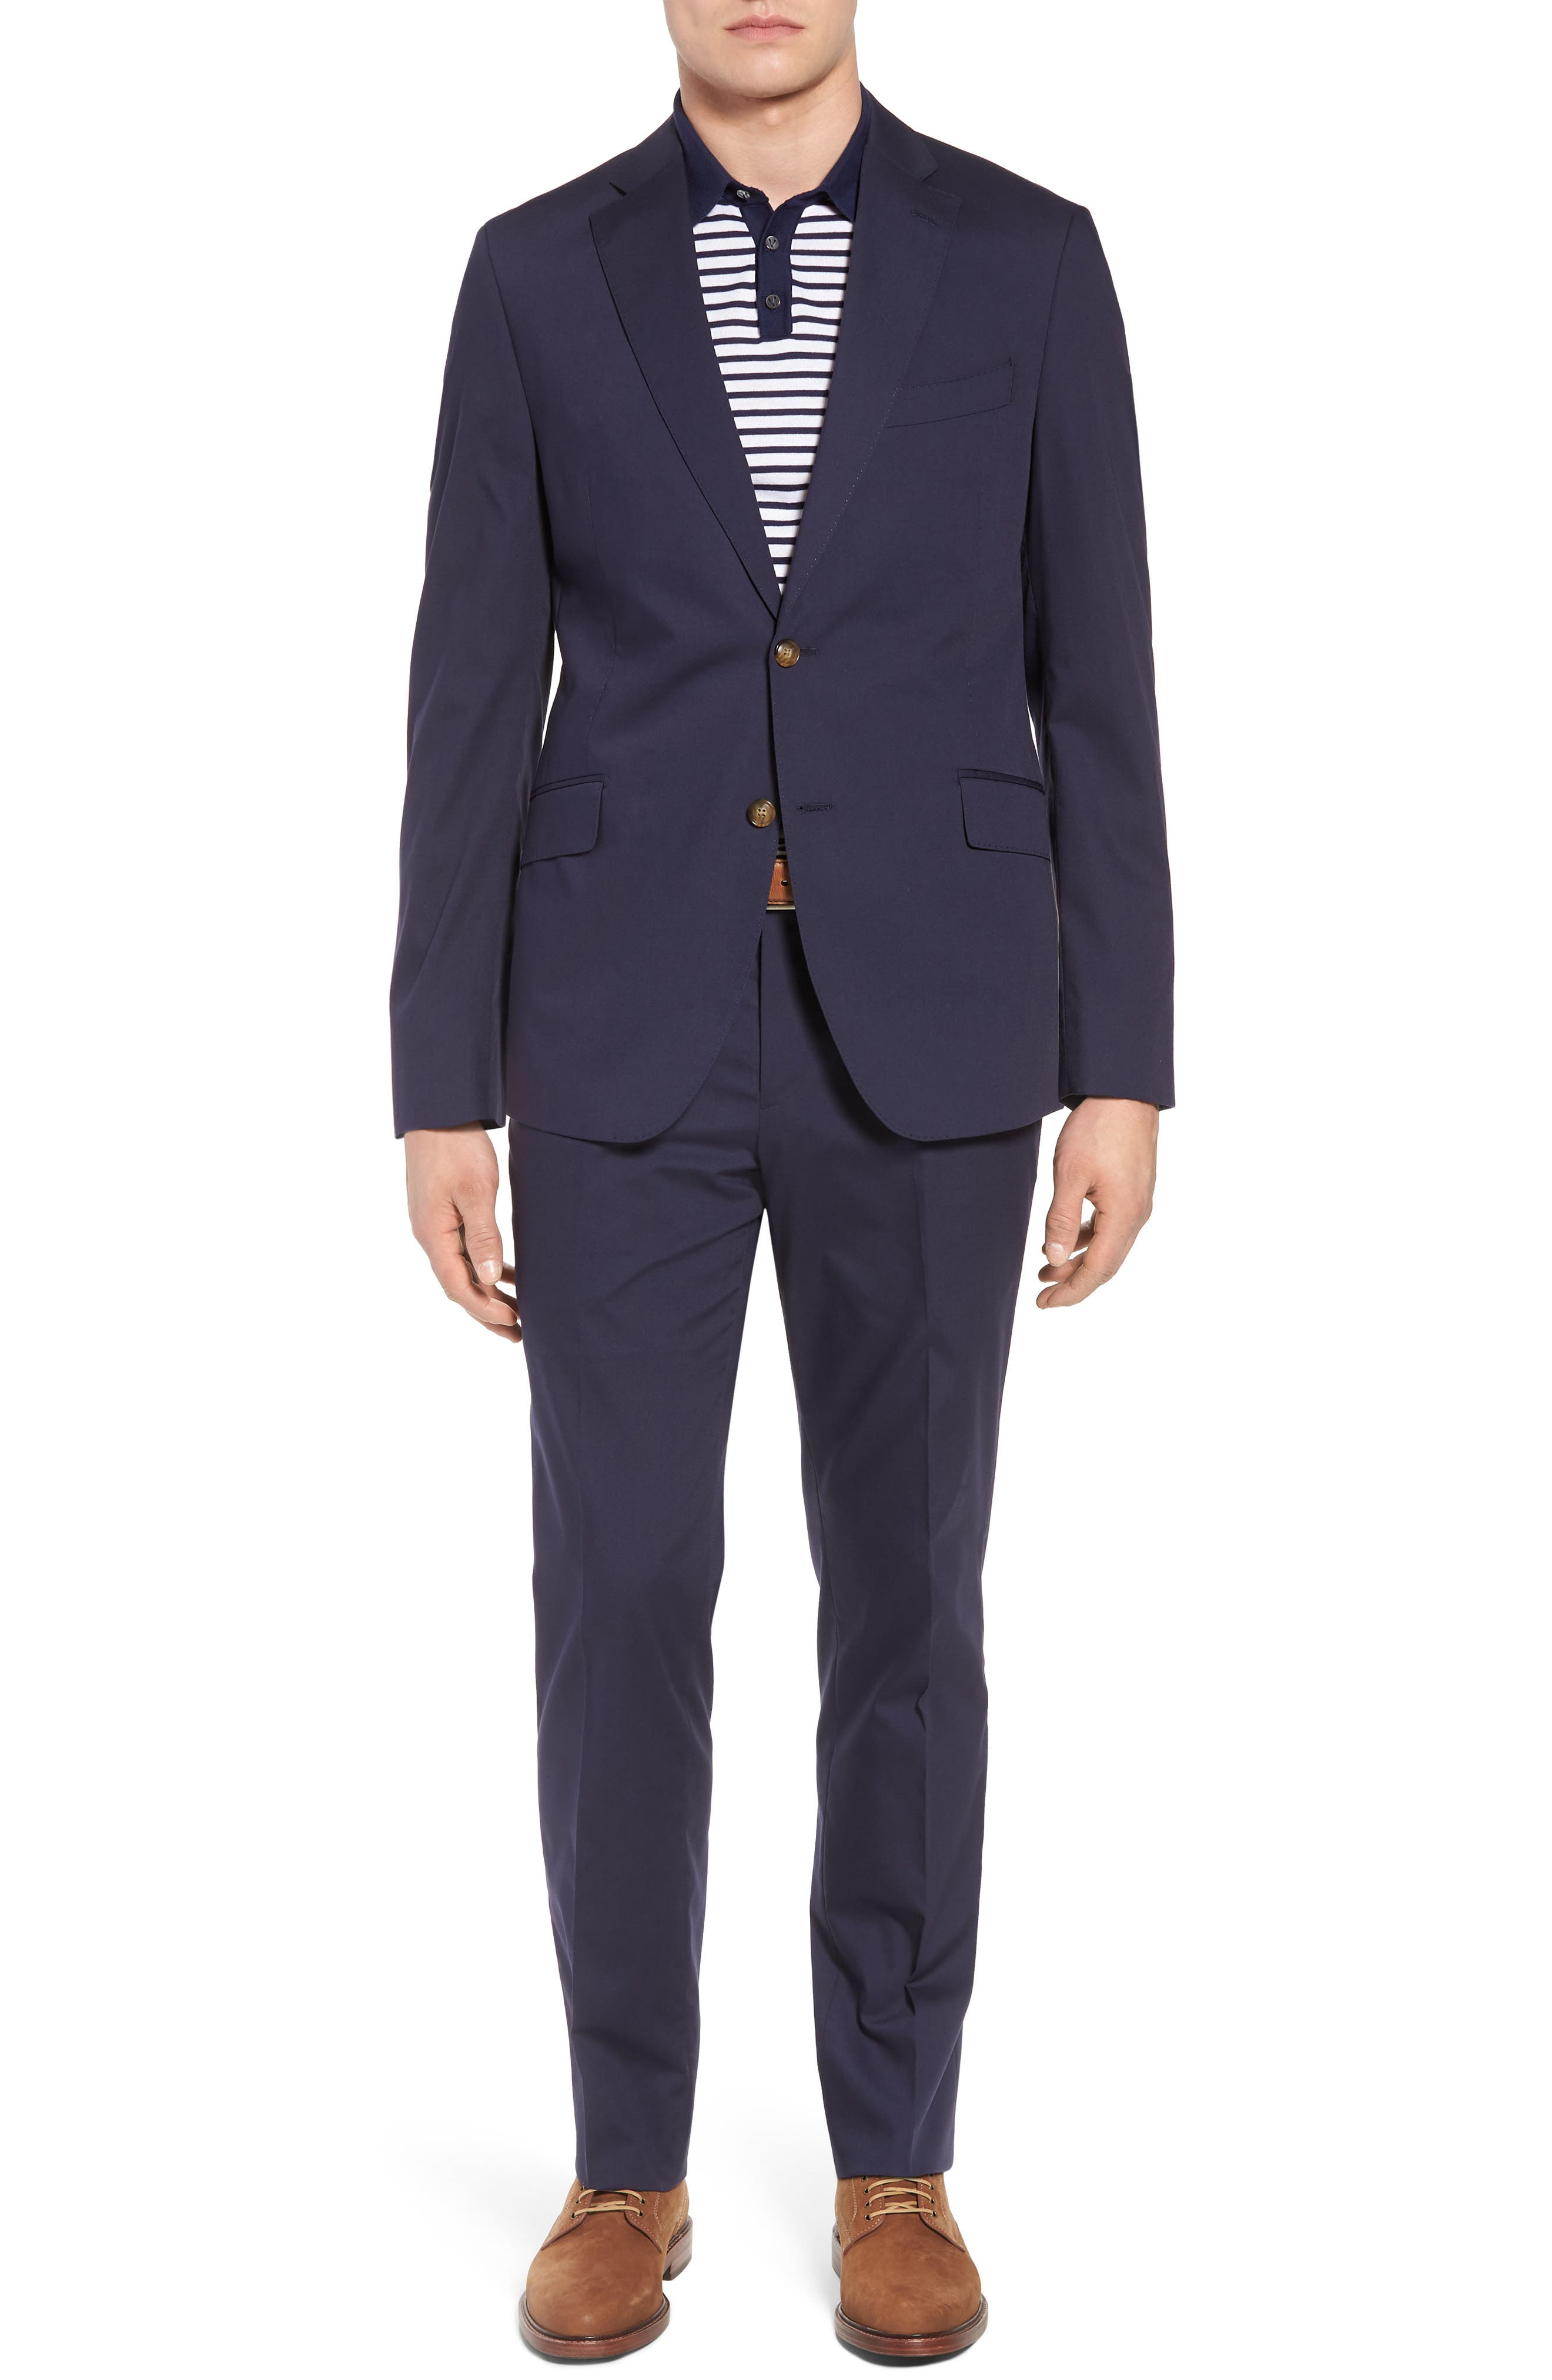 Irons AIM Classic Fit Solid Cotton Blend Suit,                         Main,                         color, Navy